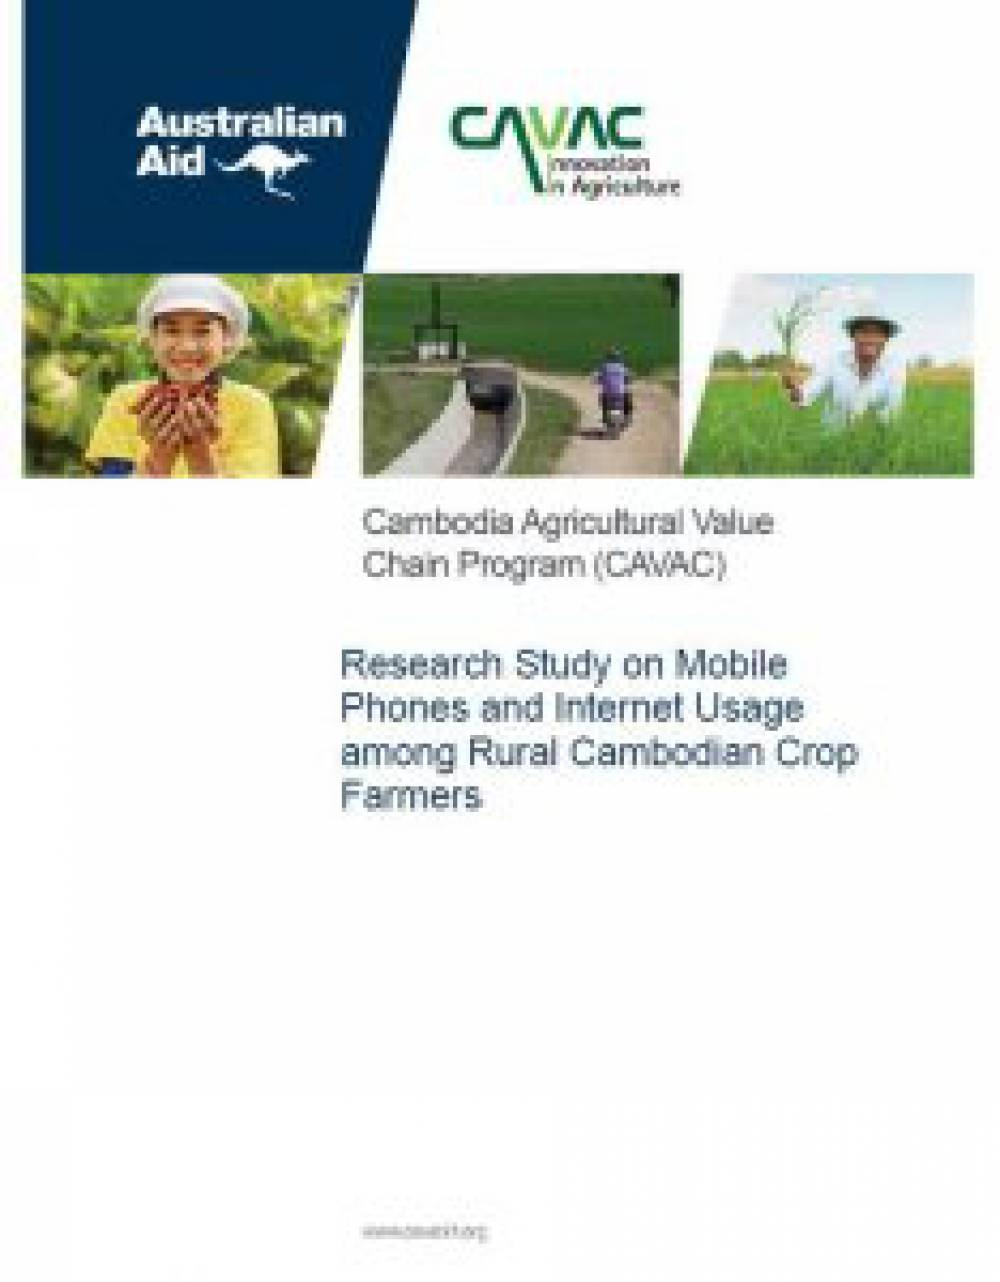 Research Study on Mobile Phones and Internet Usage among Rural Cambodian Crop Farmers